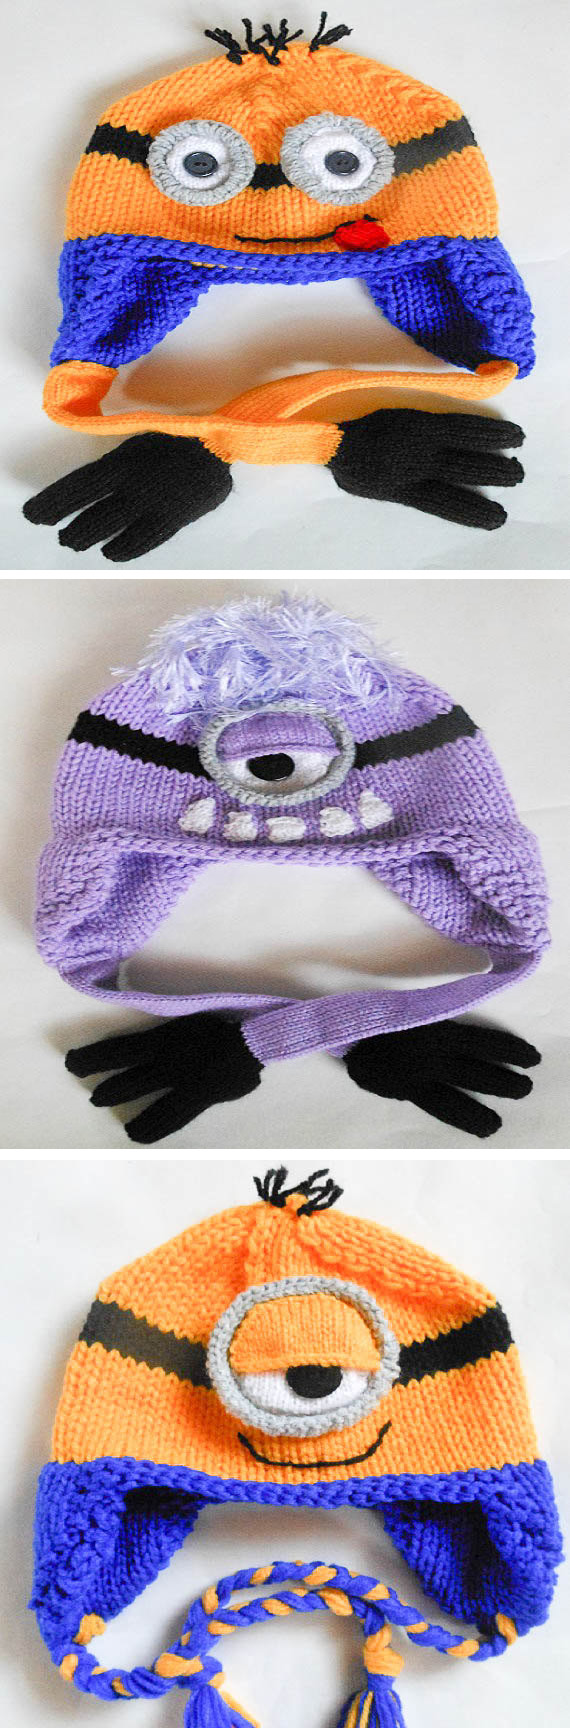 Lujoso Knitted Earflap Hat Pattern With Braided Ties Cresta - Manta ...